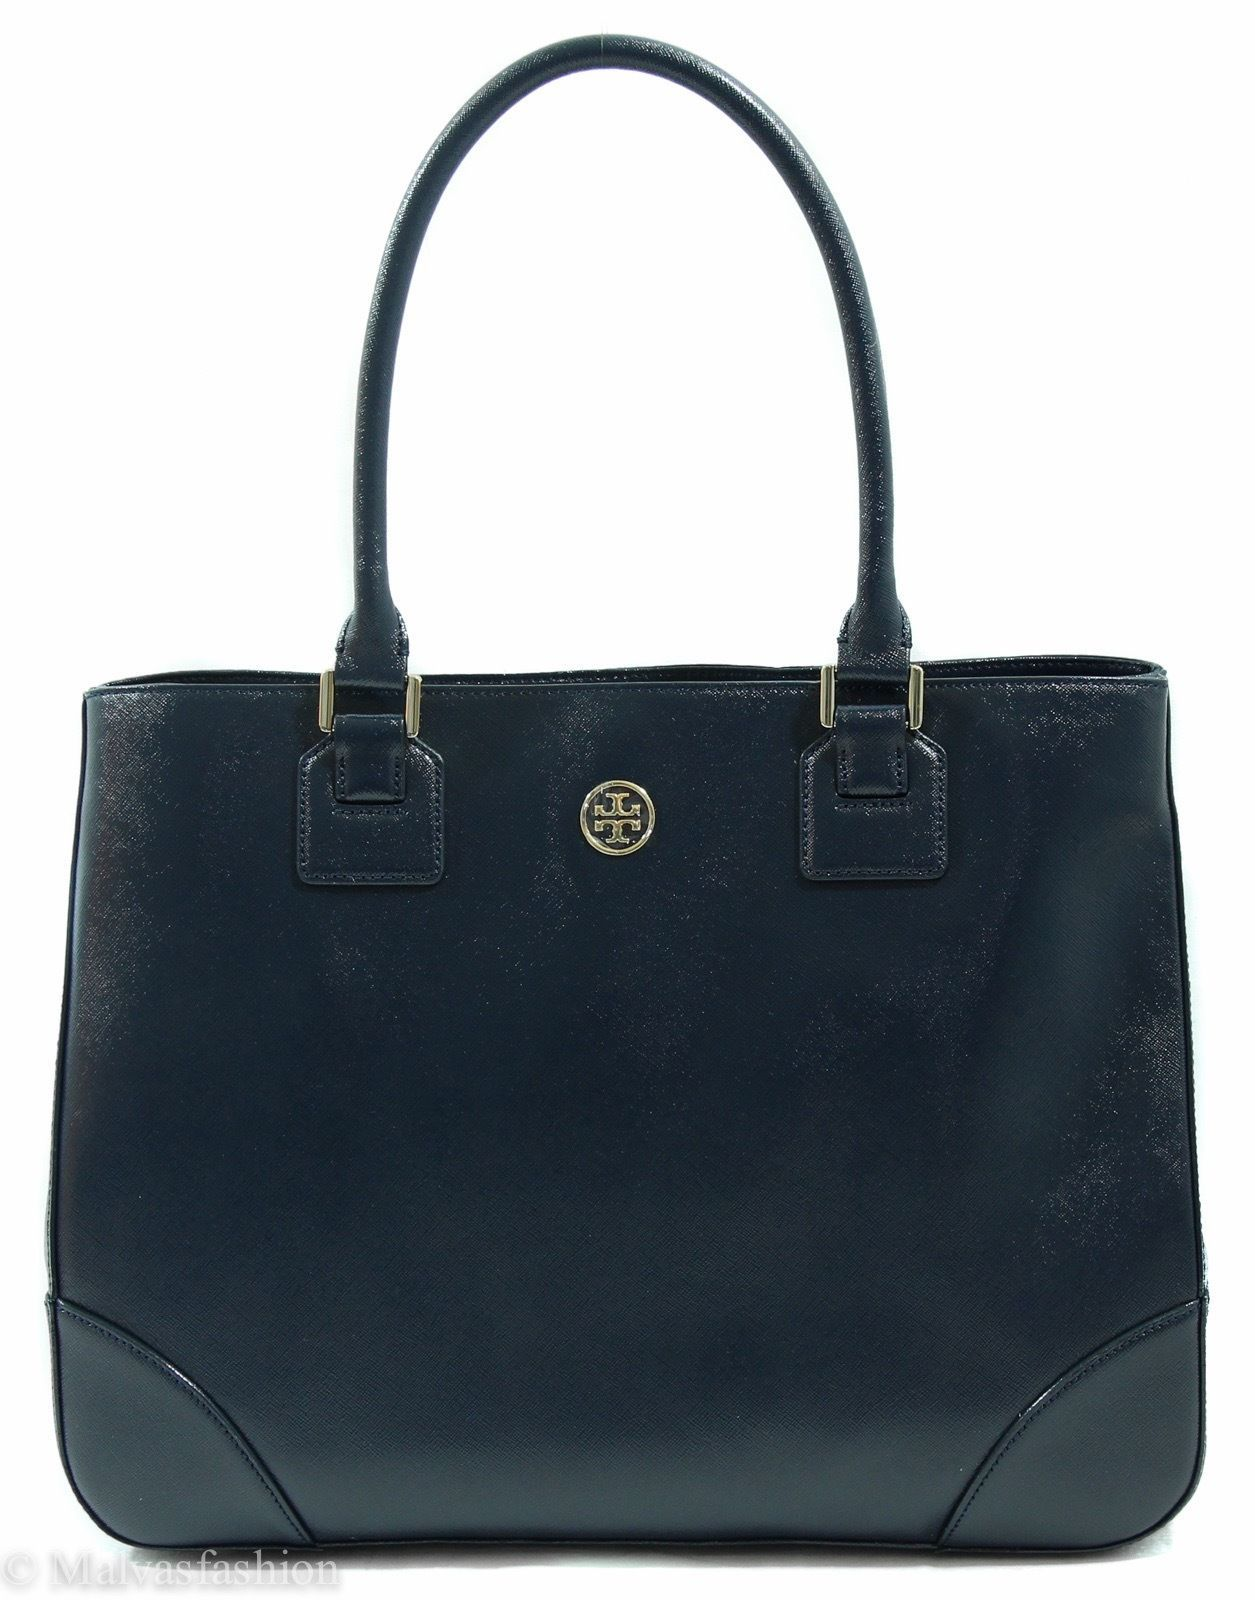 Primary image for NWT Tory Burch Robinson East/West Tote Handbag Bag, Blue